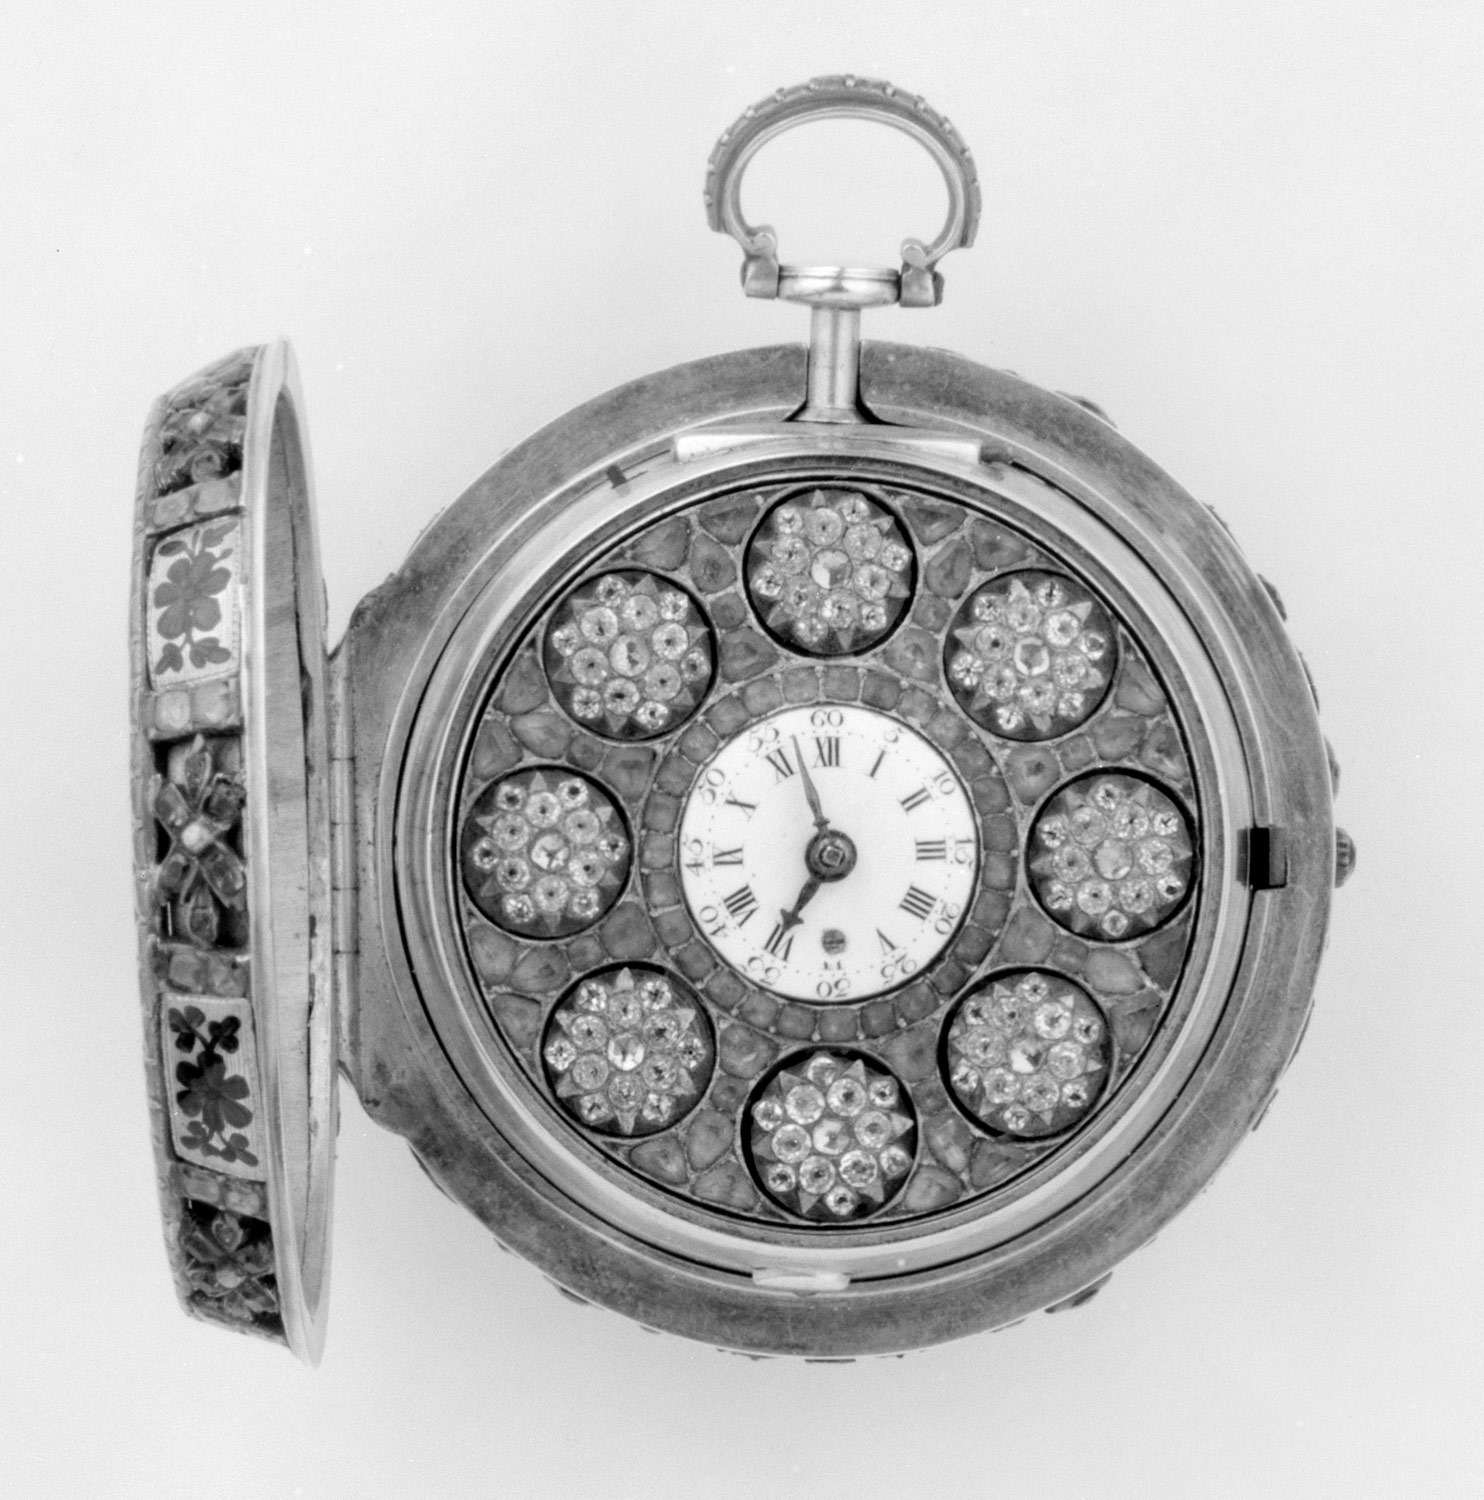 Pair-case automaton watch